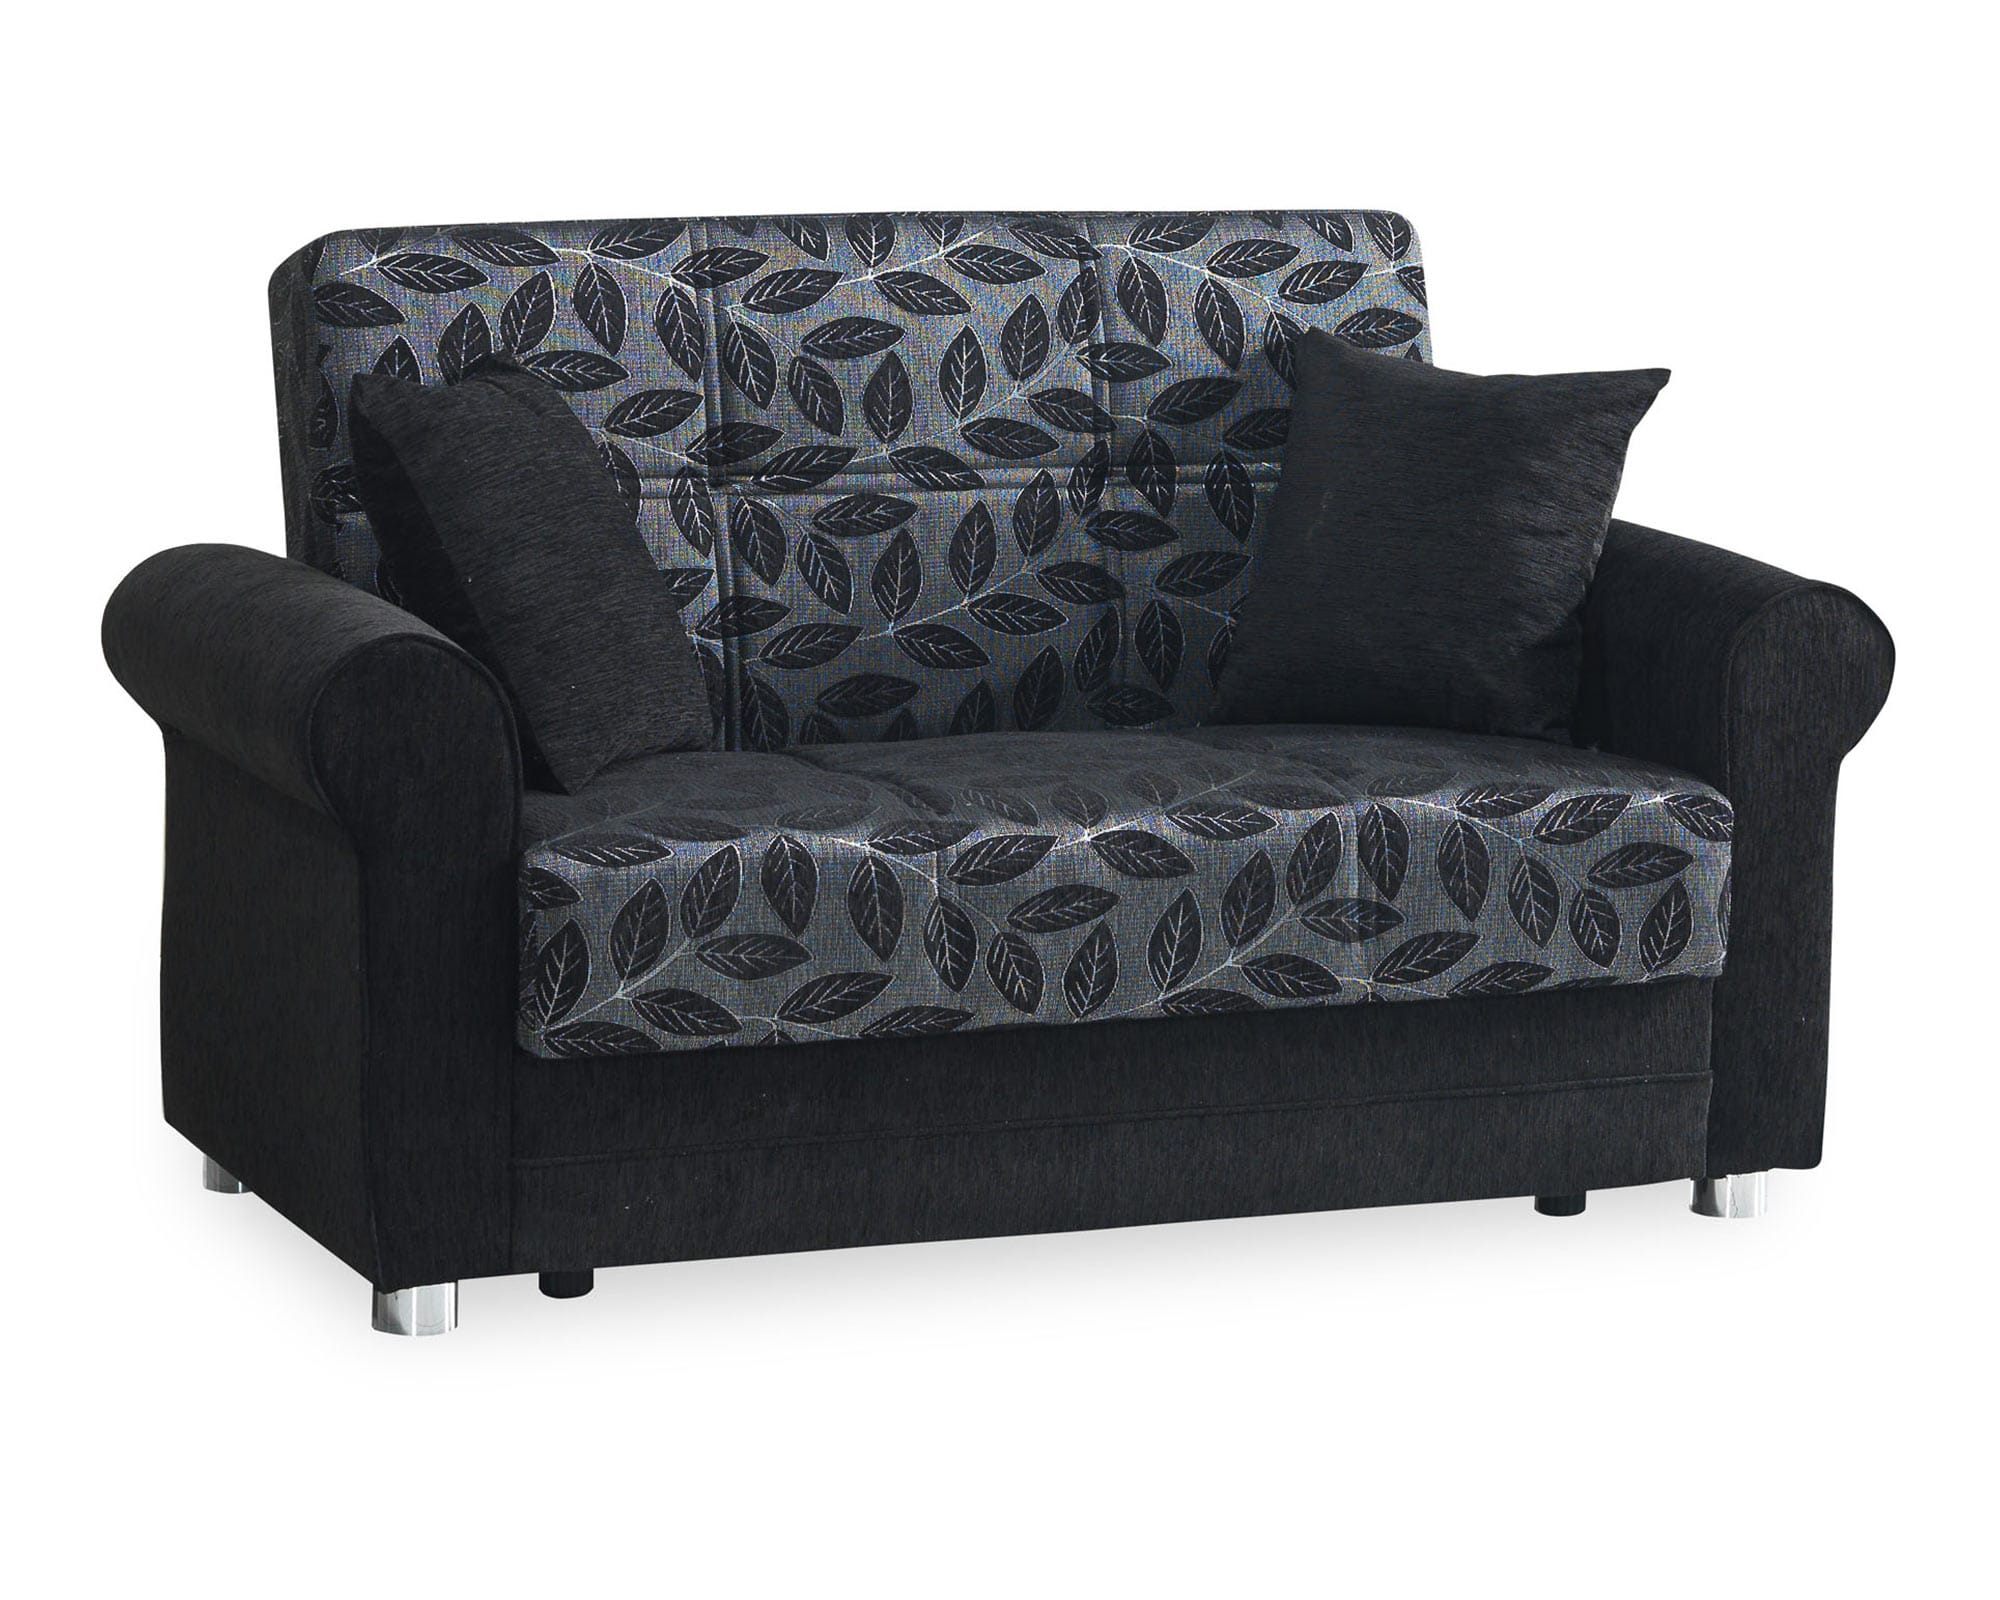 Rio Black Convertible Loveseat by Casamode